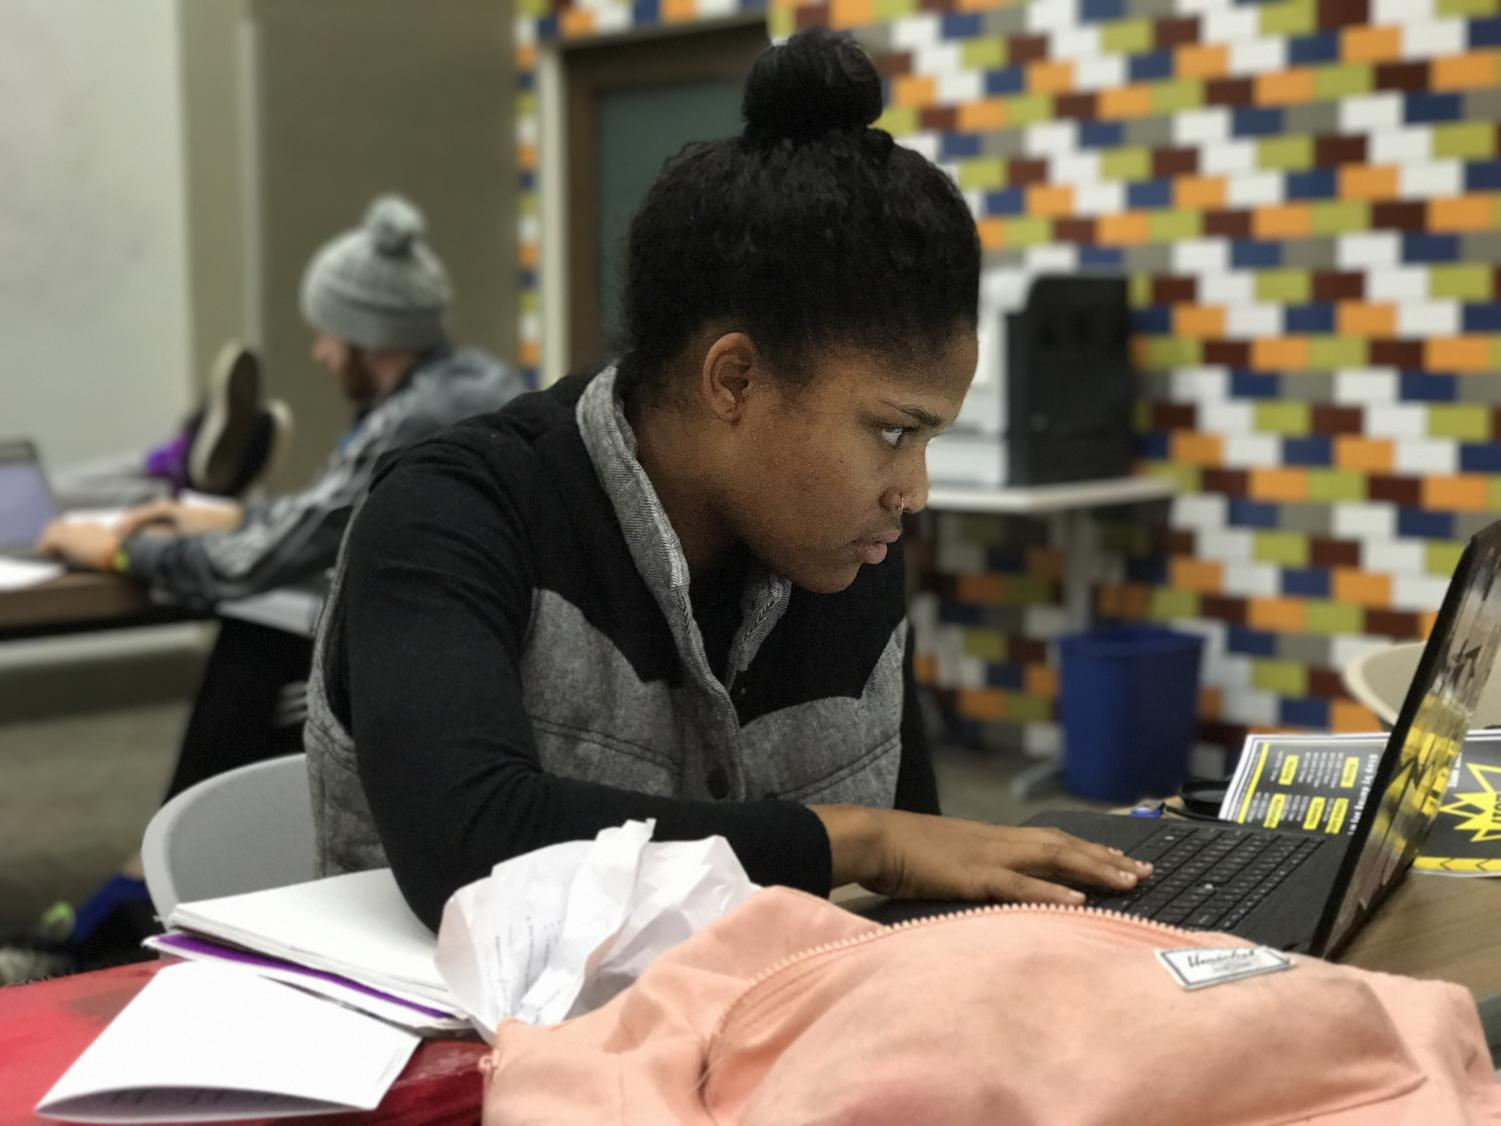 AIC student Lauren Spoon locks in on her studies as the semester winds down.